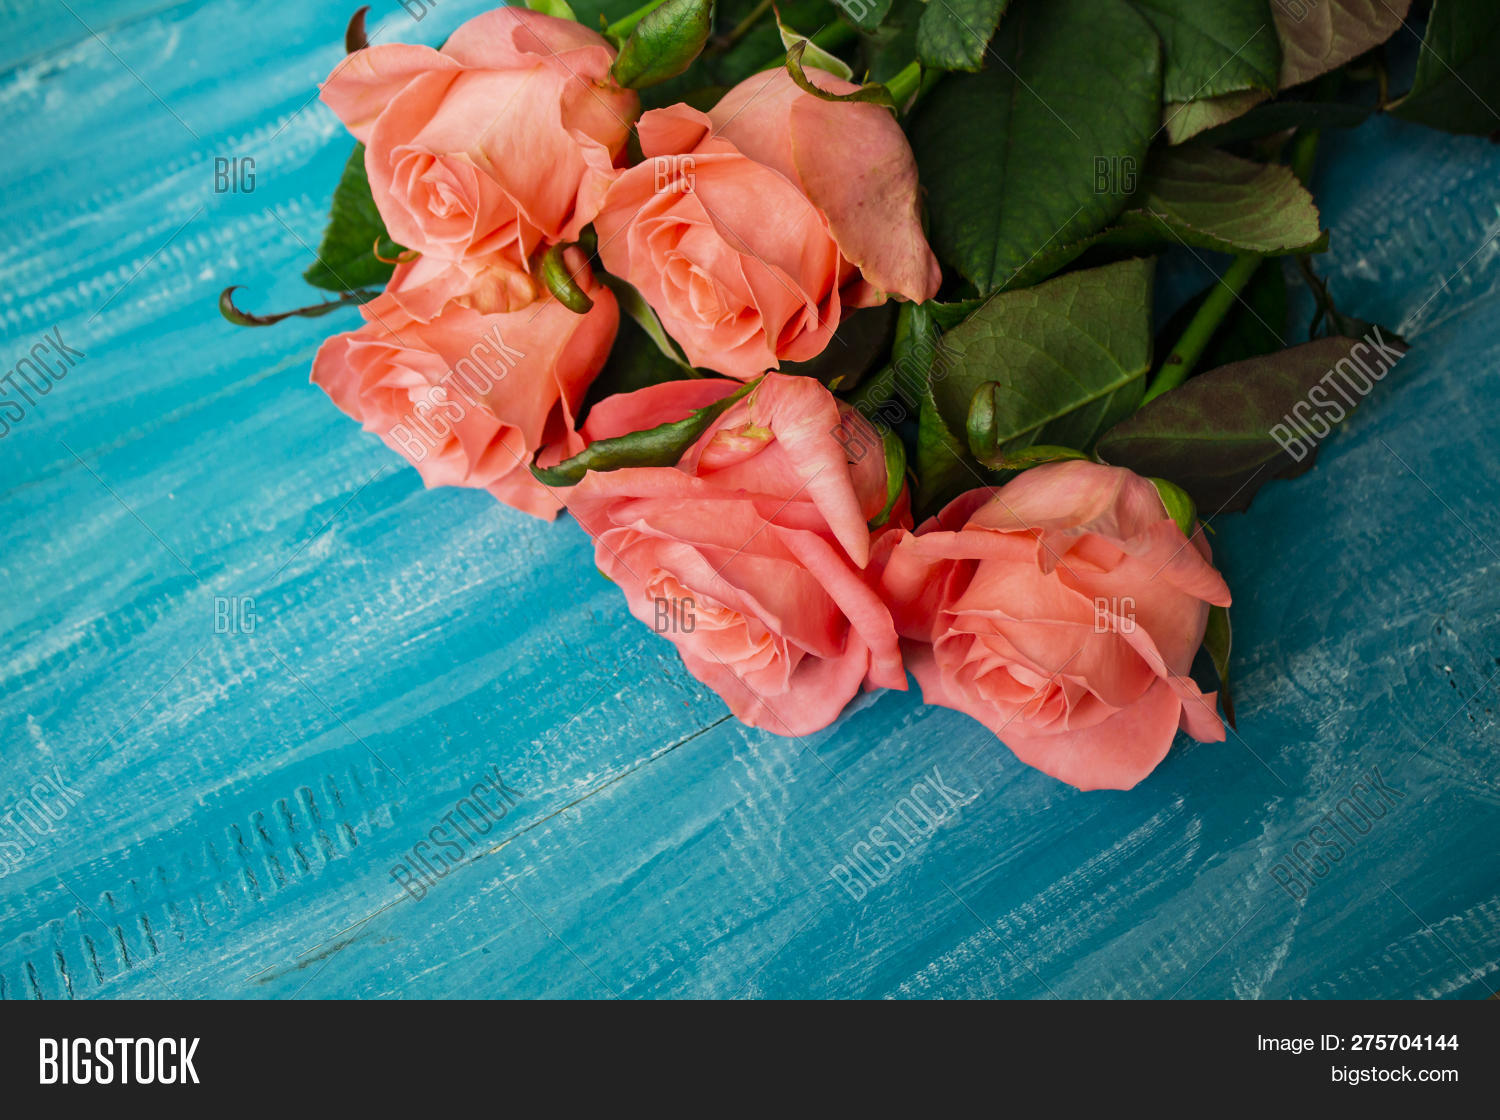 alloy,artistically,background,beautiful,beauty,border,botanical,bouquet,card,colorful-flower,concept,day,decoration,flowers,rose